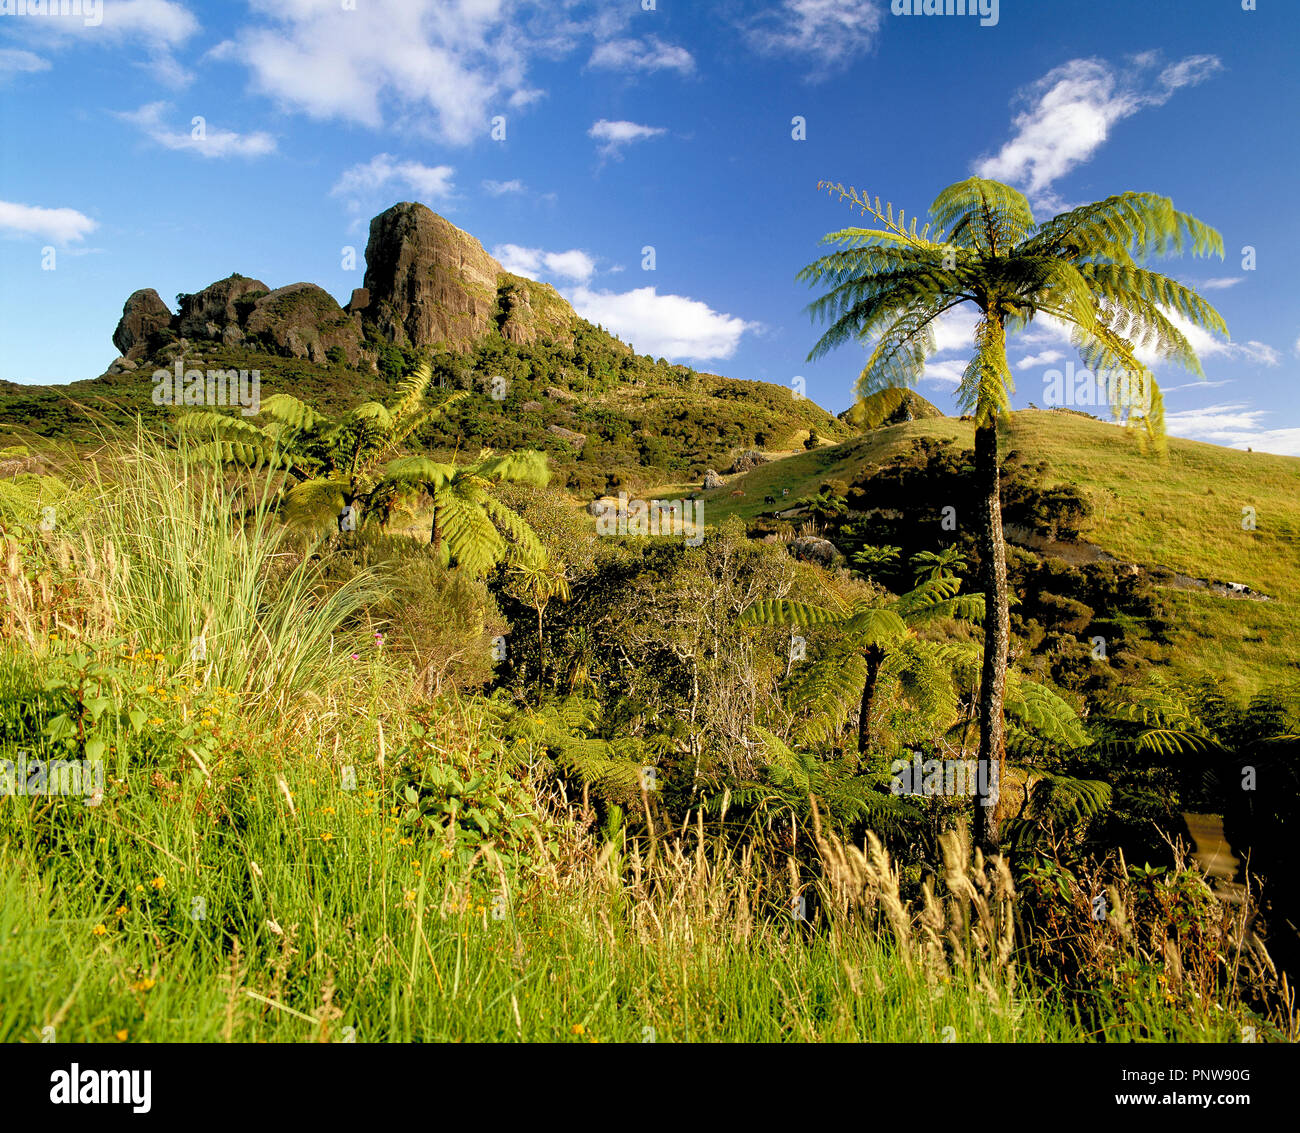 New Zealand. North Island. Landscape with rock outcrop on hill and tree ferns. - Stock Image